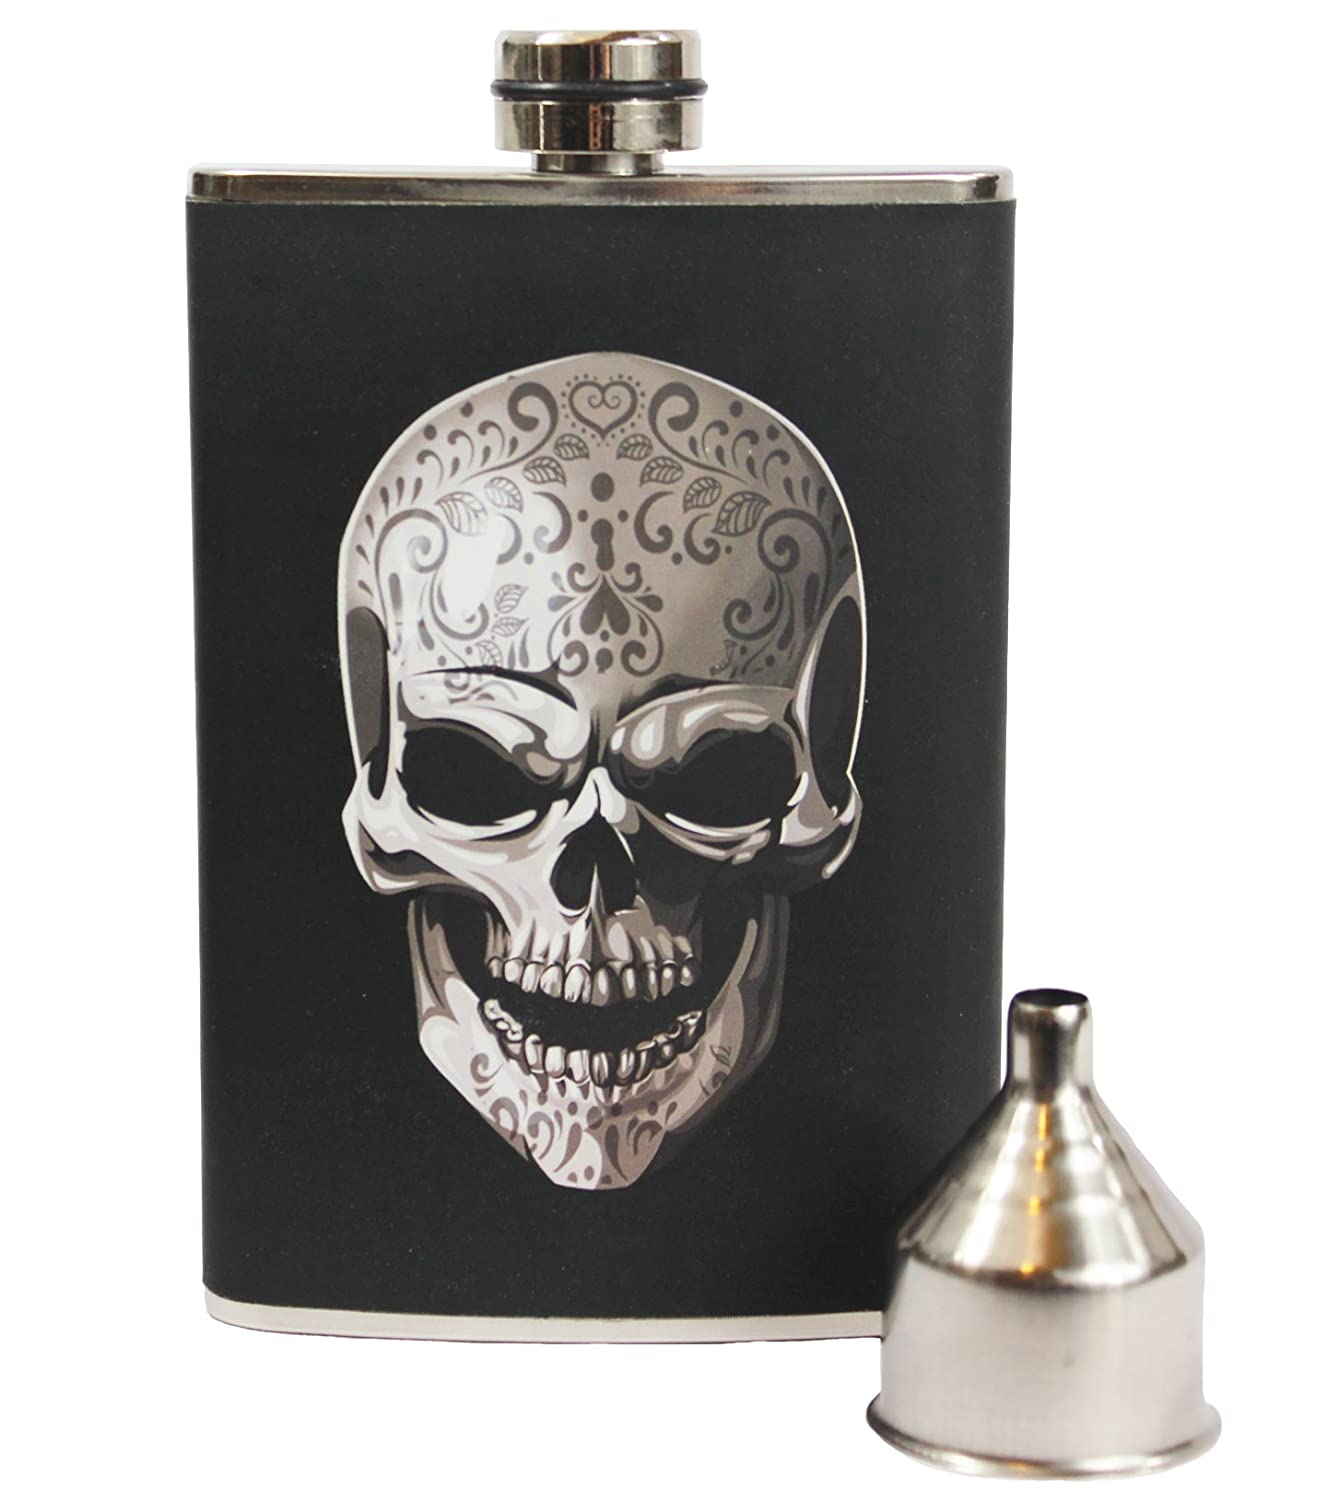 8oz Stainless Steel Primo 18/8#304 Skull Wrap Premium/Heavy Duty Hip Flask Gift Set - Includes Funnel and Gift Box